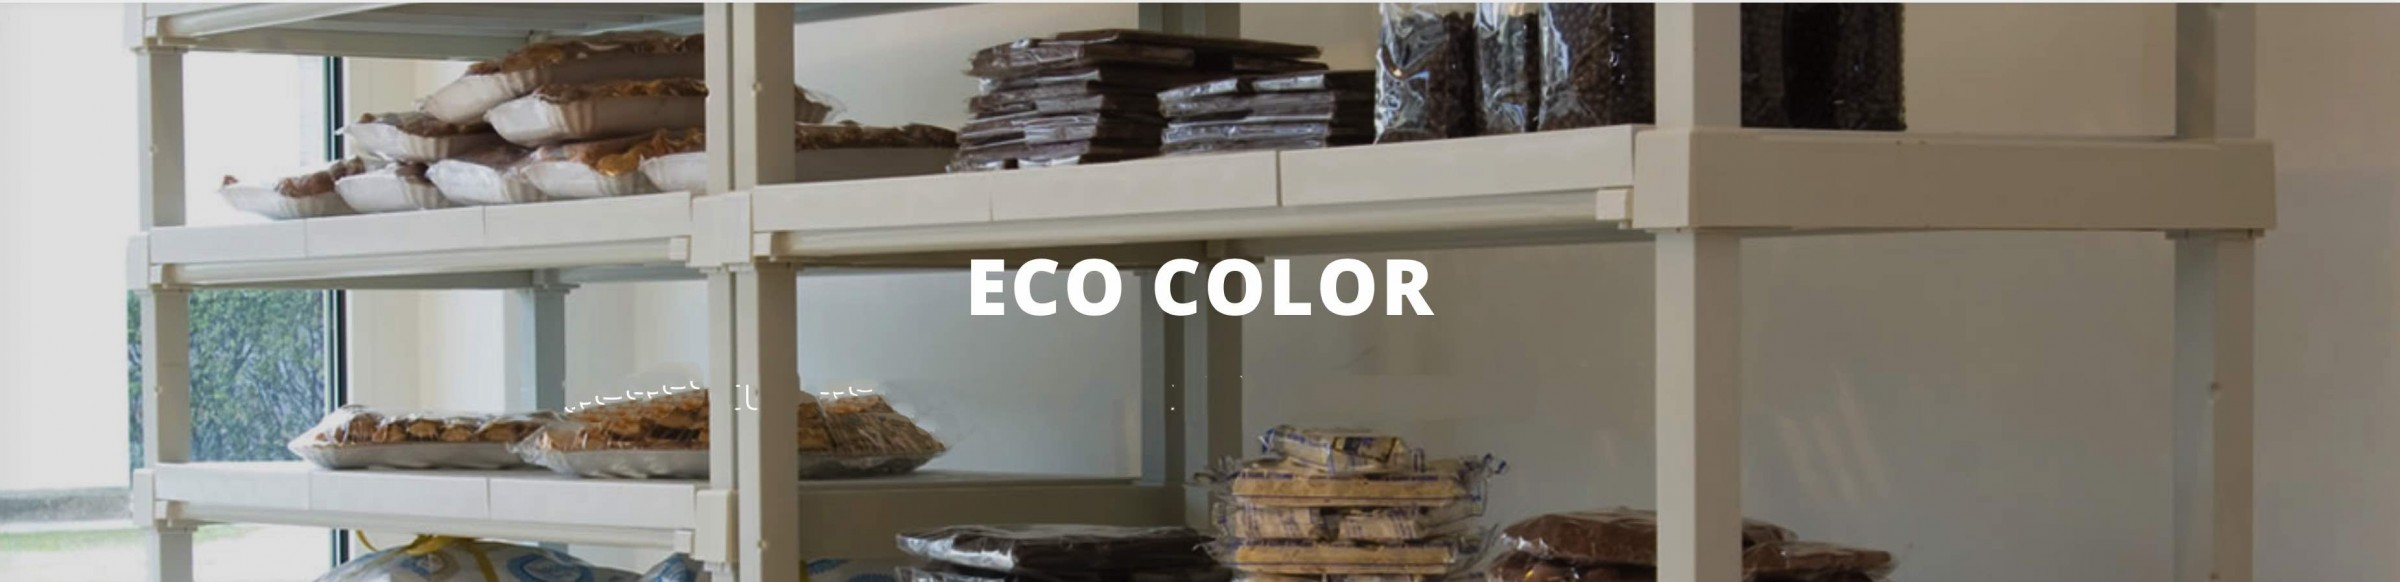 IN-FIX Eco Color